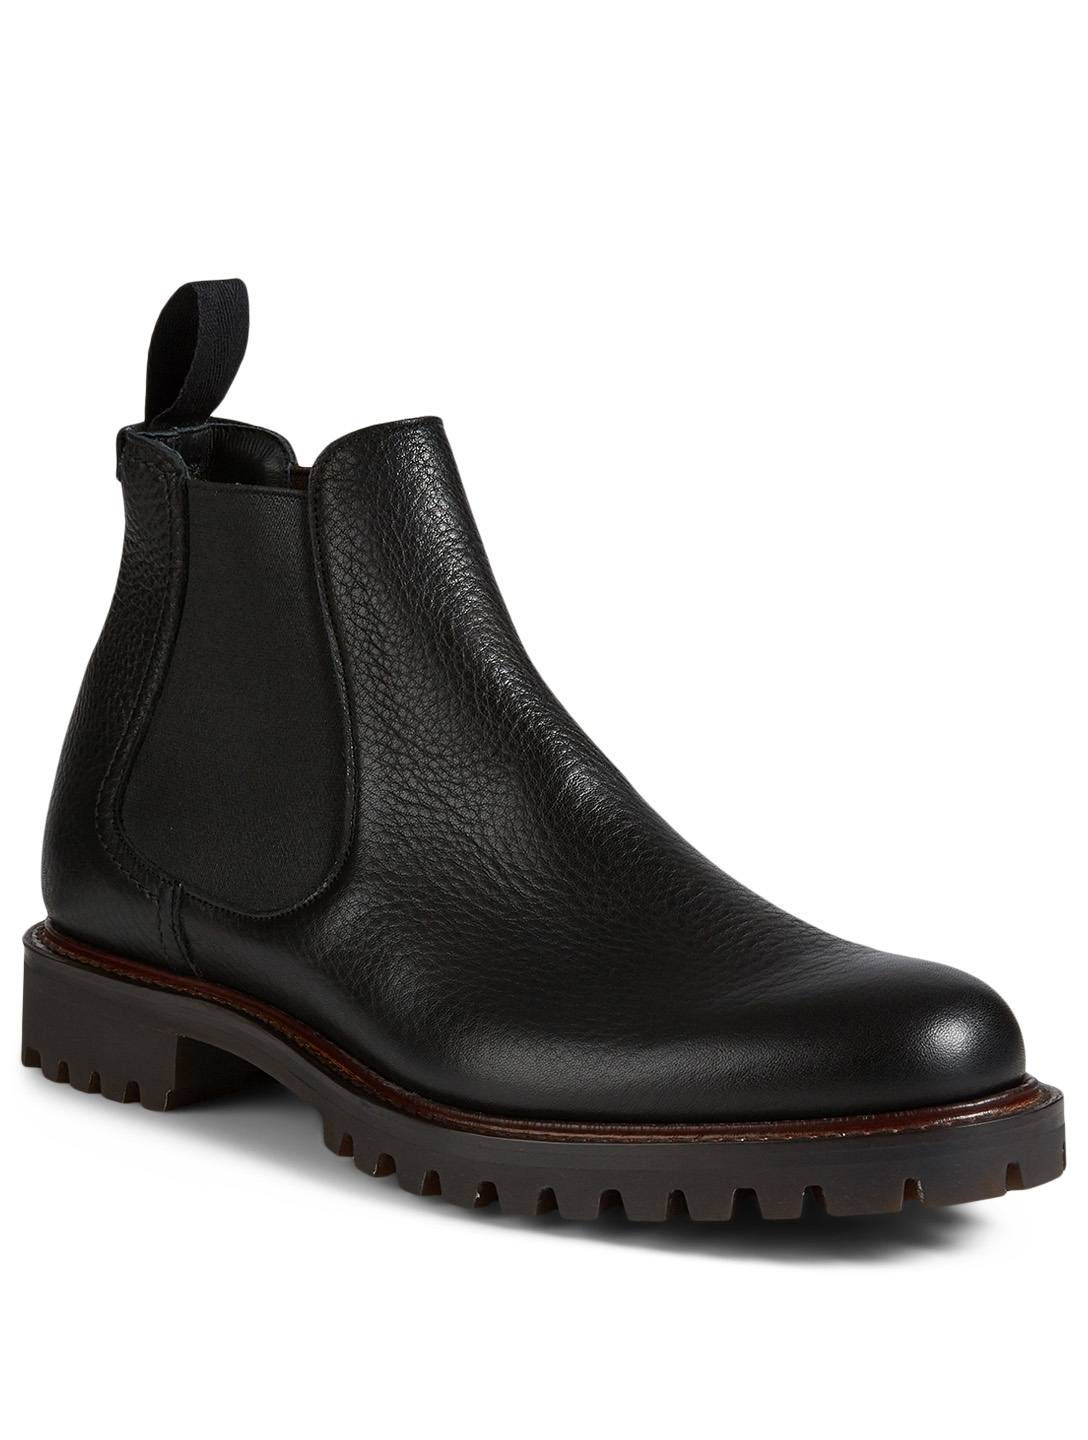 CHURCH'S Cornwood Grained Leather Chelsea Boots Men's Black